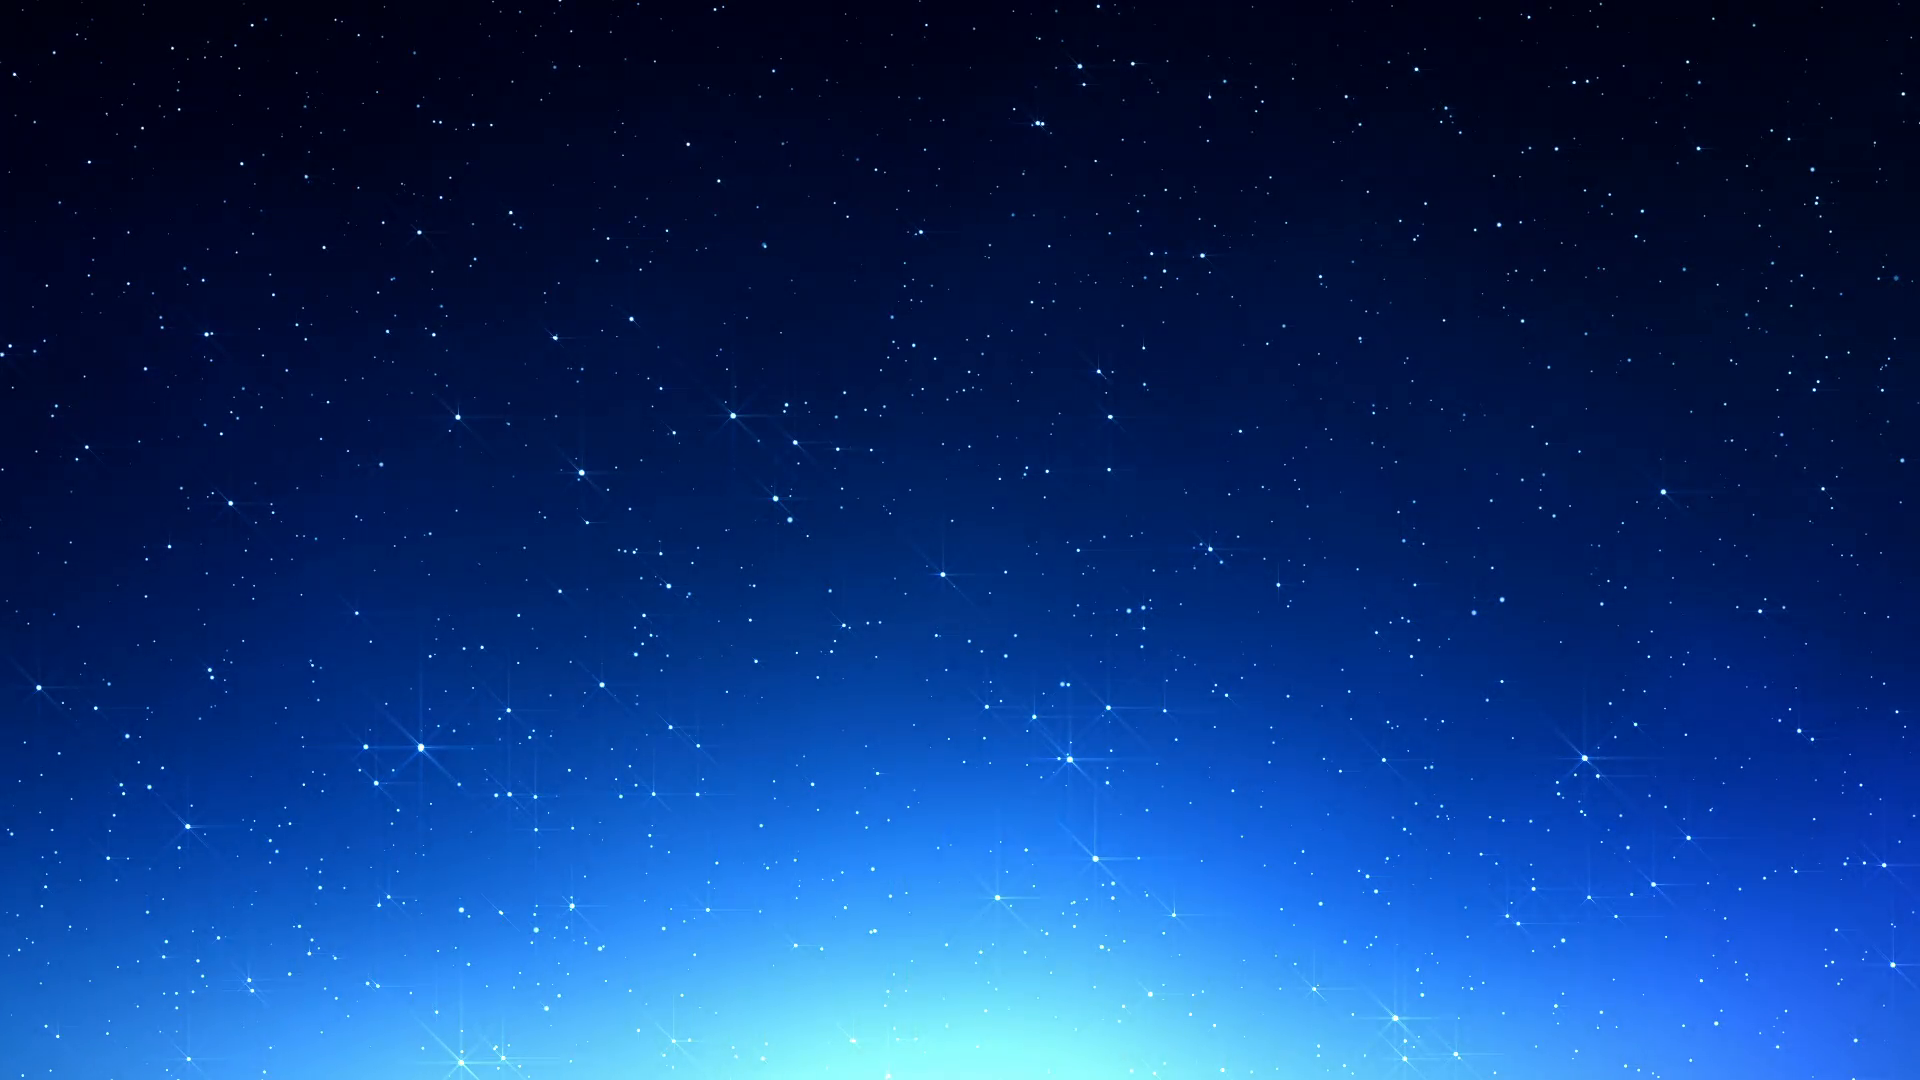 Starry Sky Background PNG - 151285